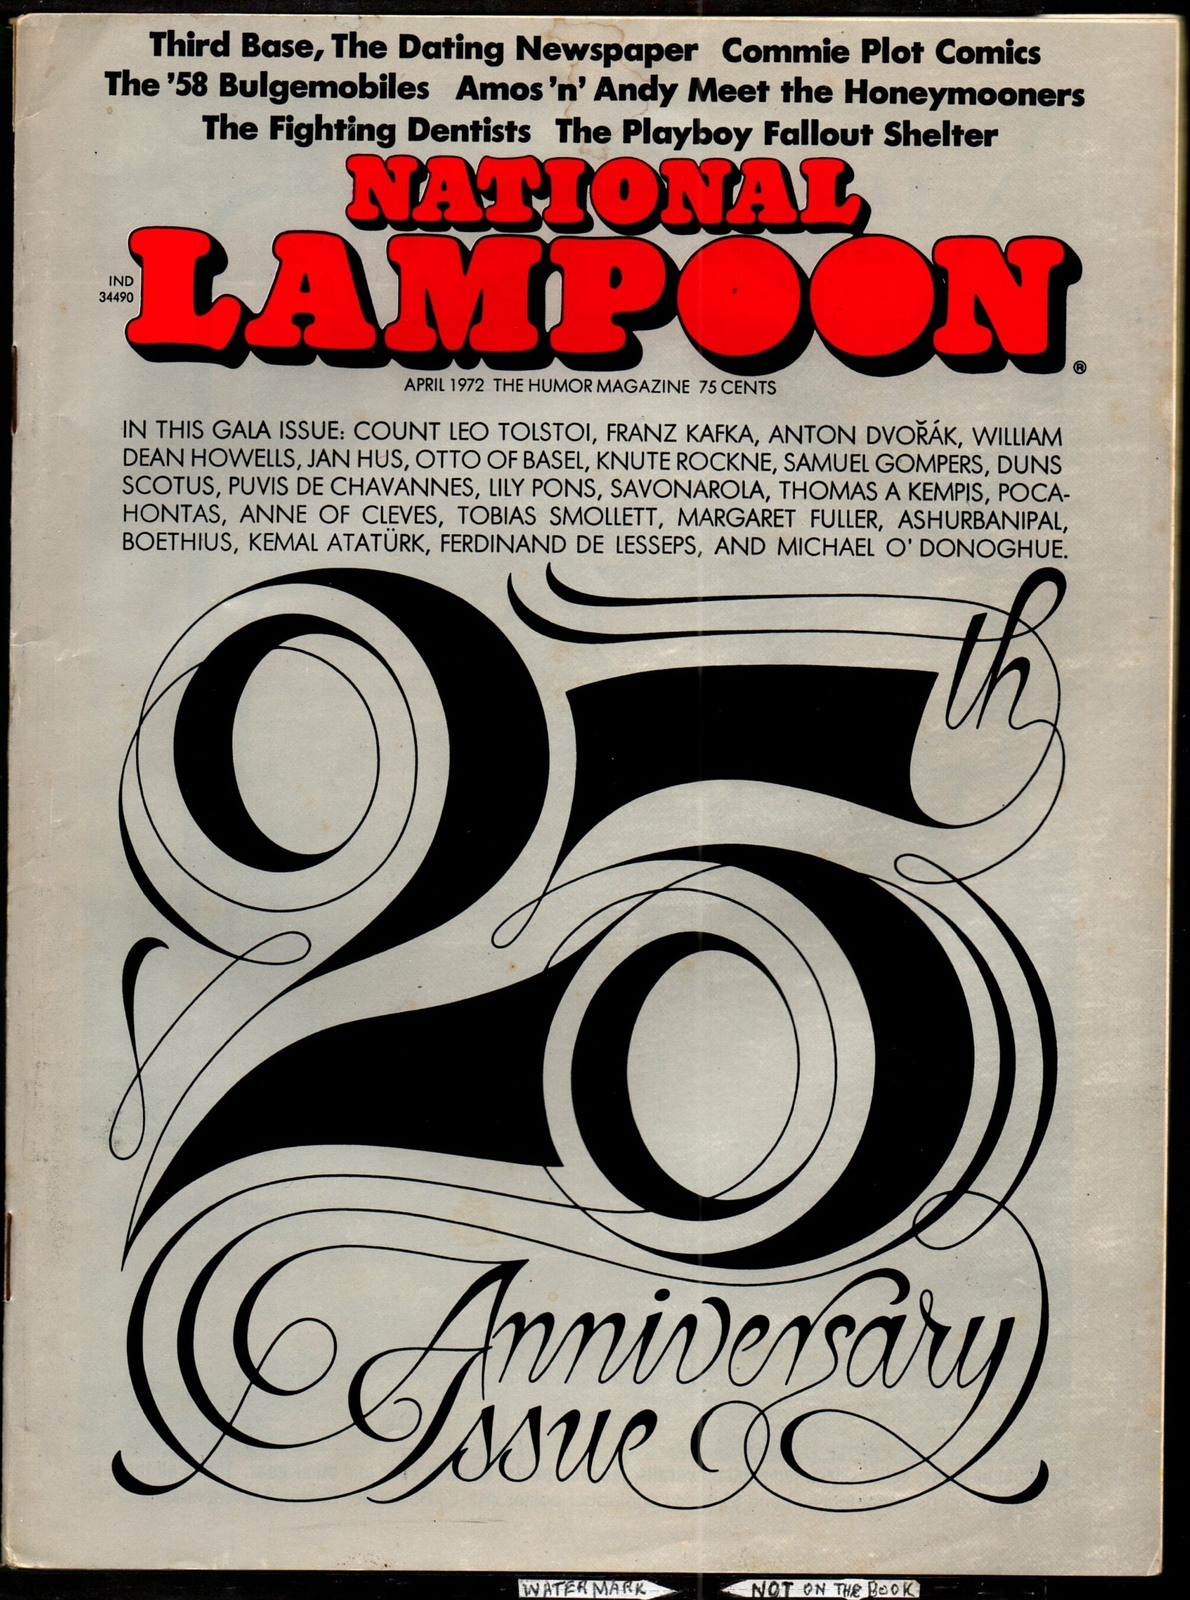 National Lampoon #25, April 1972 - 25th Anniversary issue